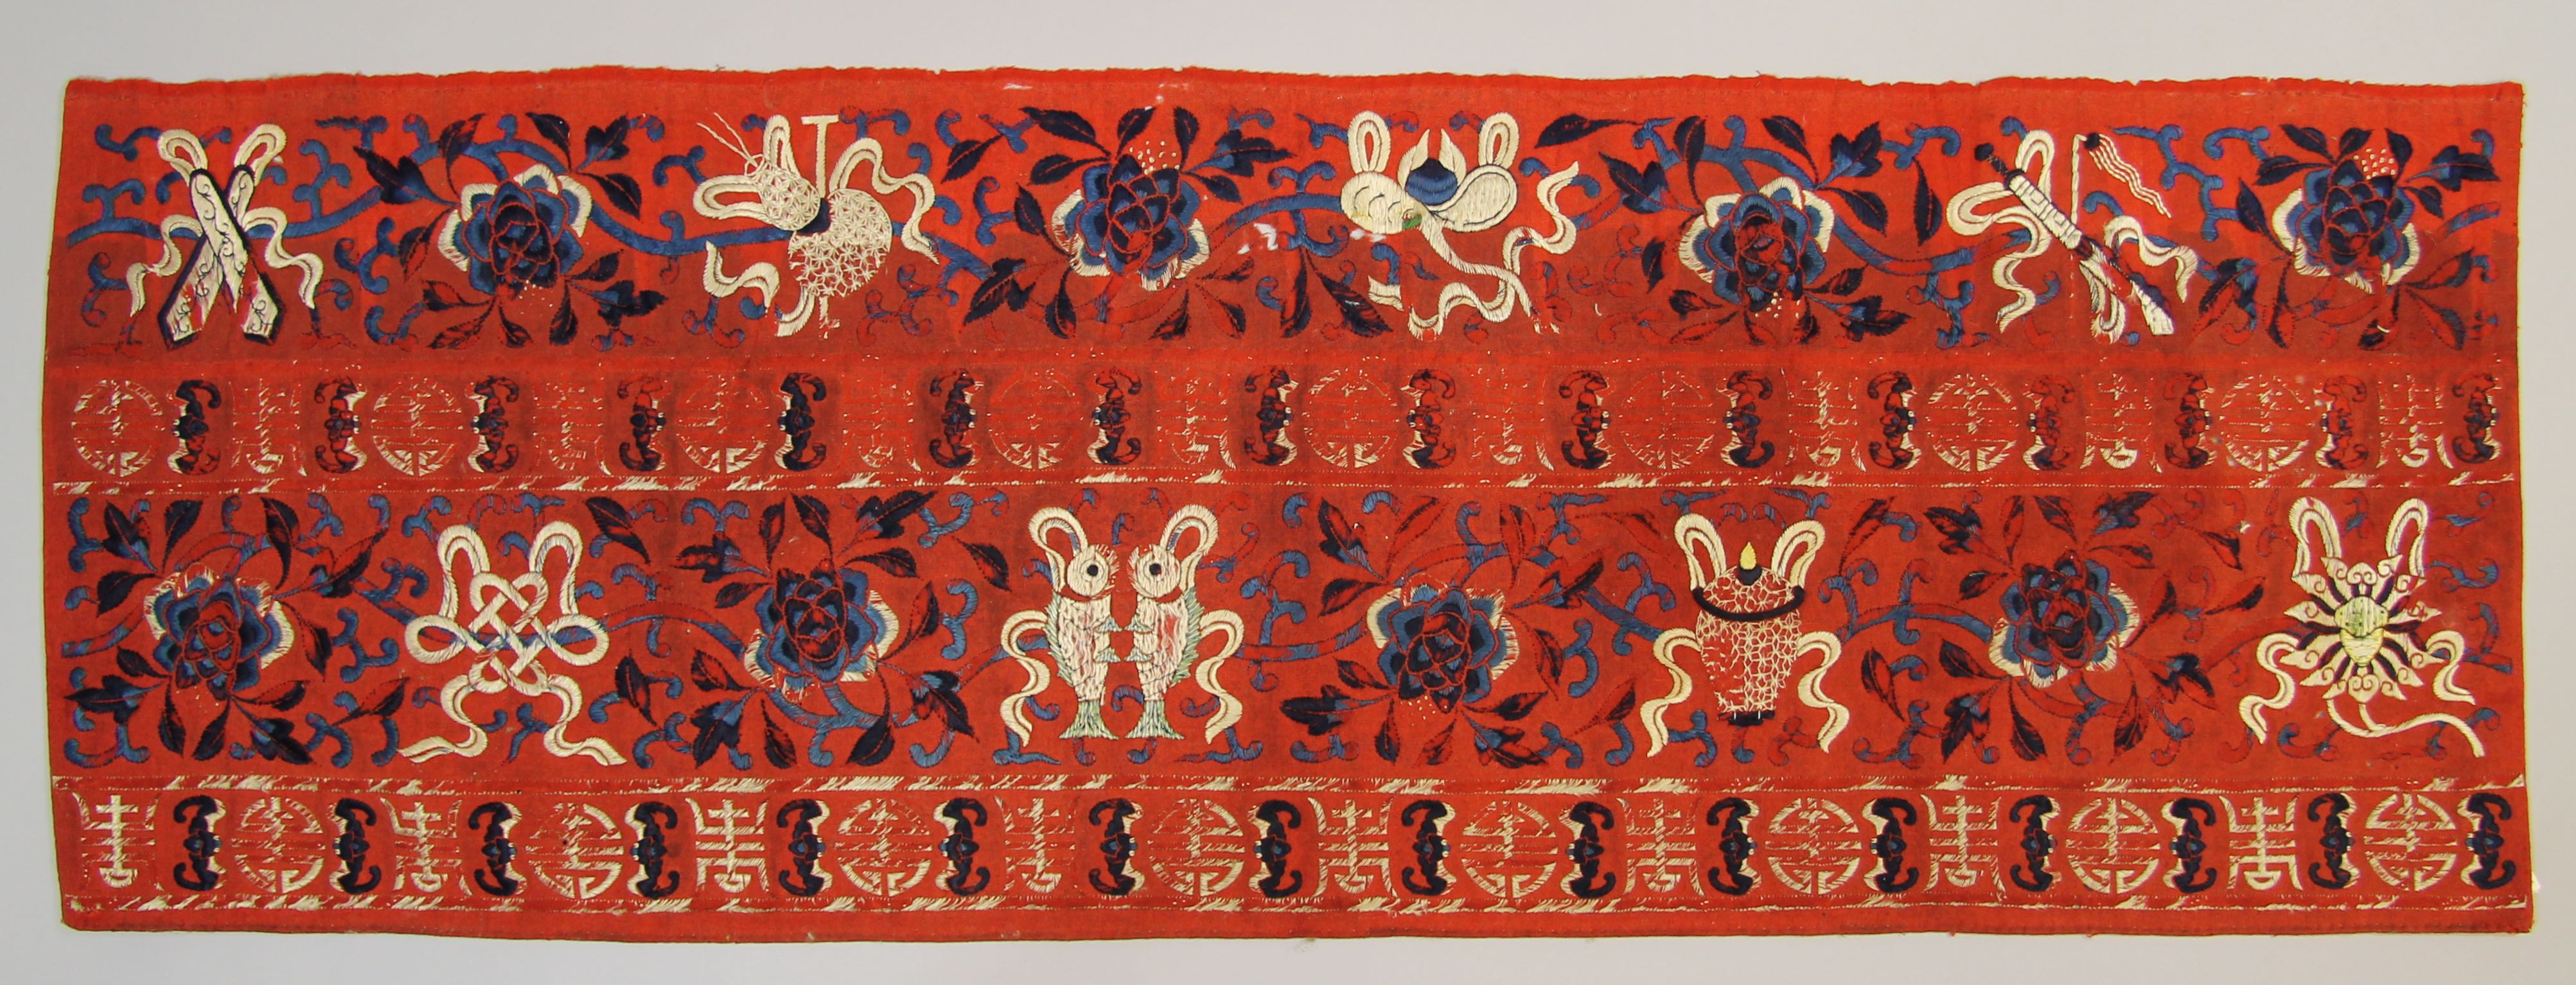 Embroidered Panel with Taoist Symbols